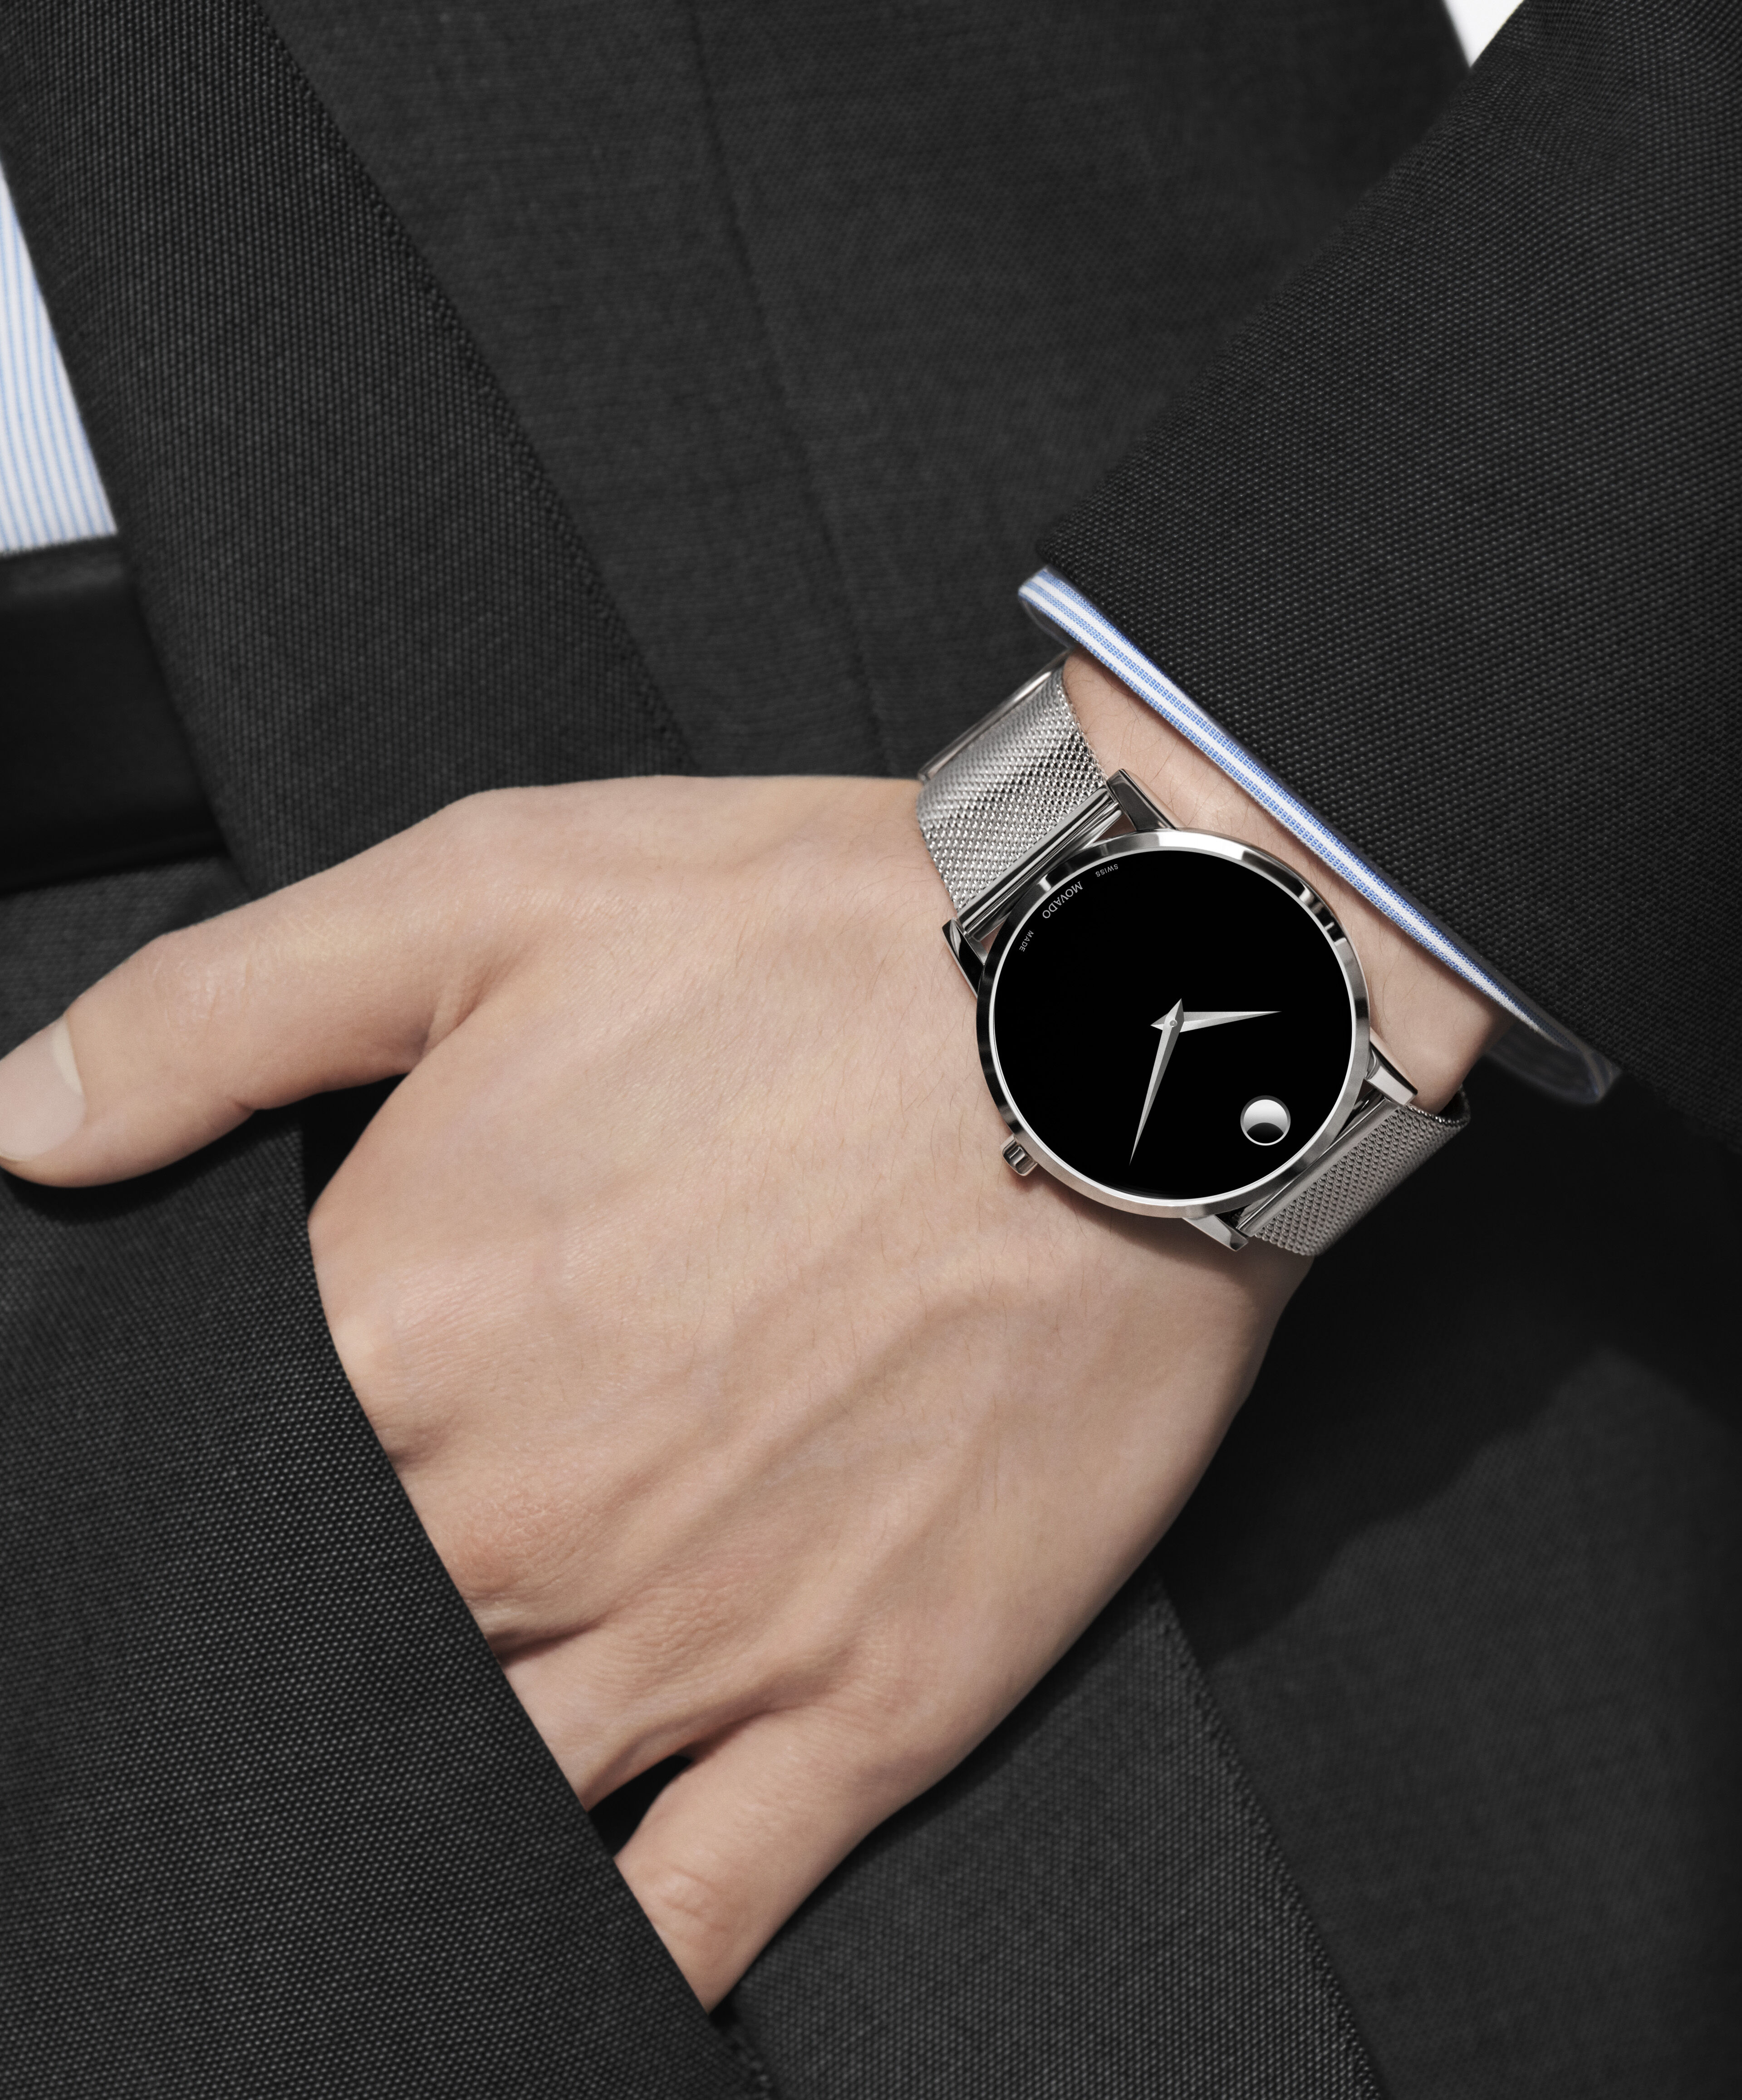 How To Tell Vicent Camuto Watches Is Fake